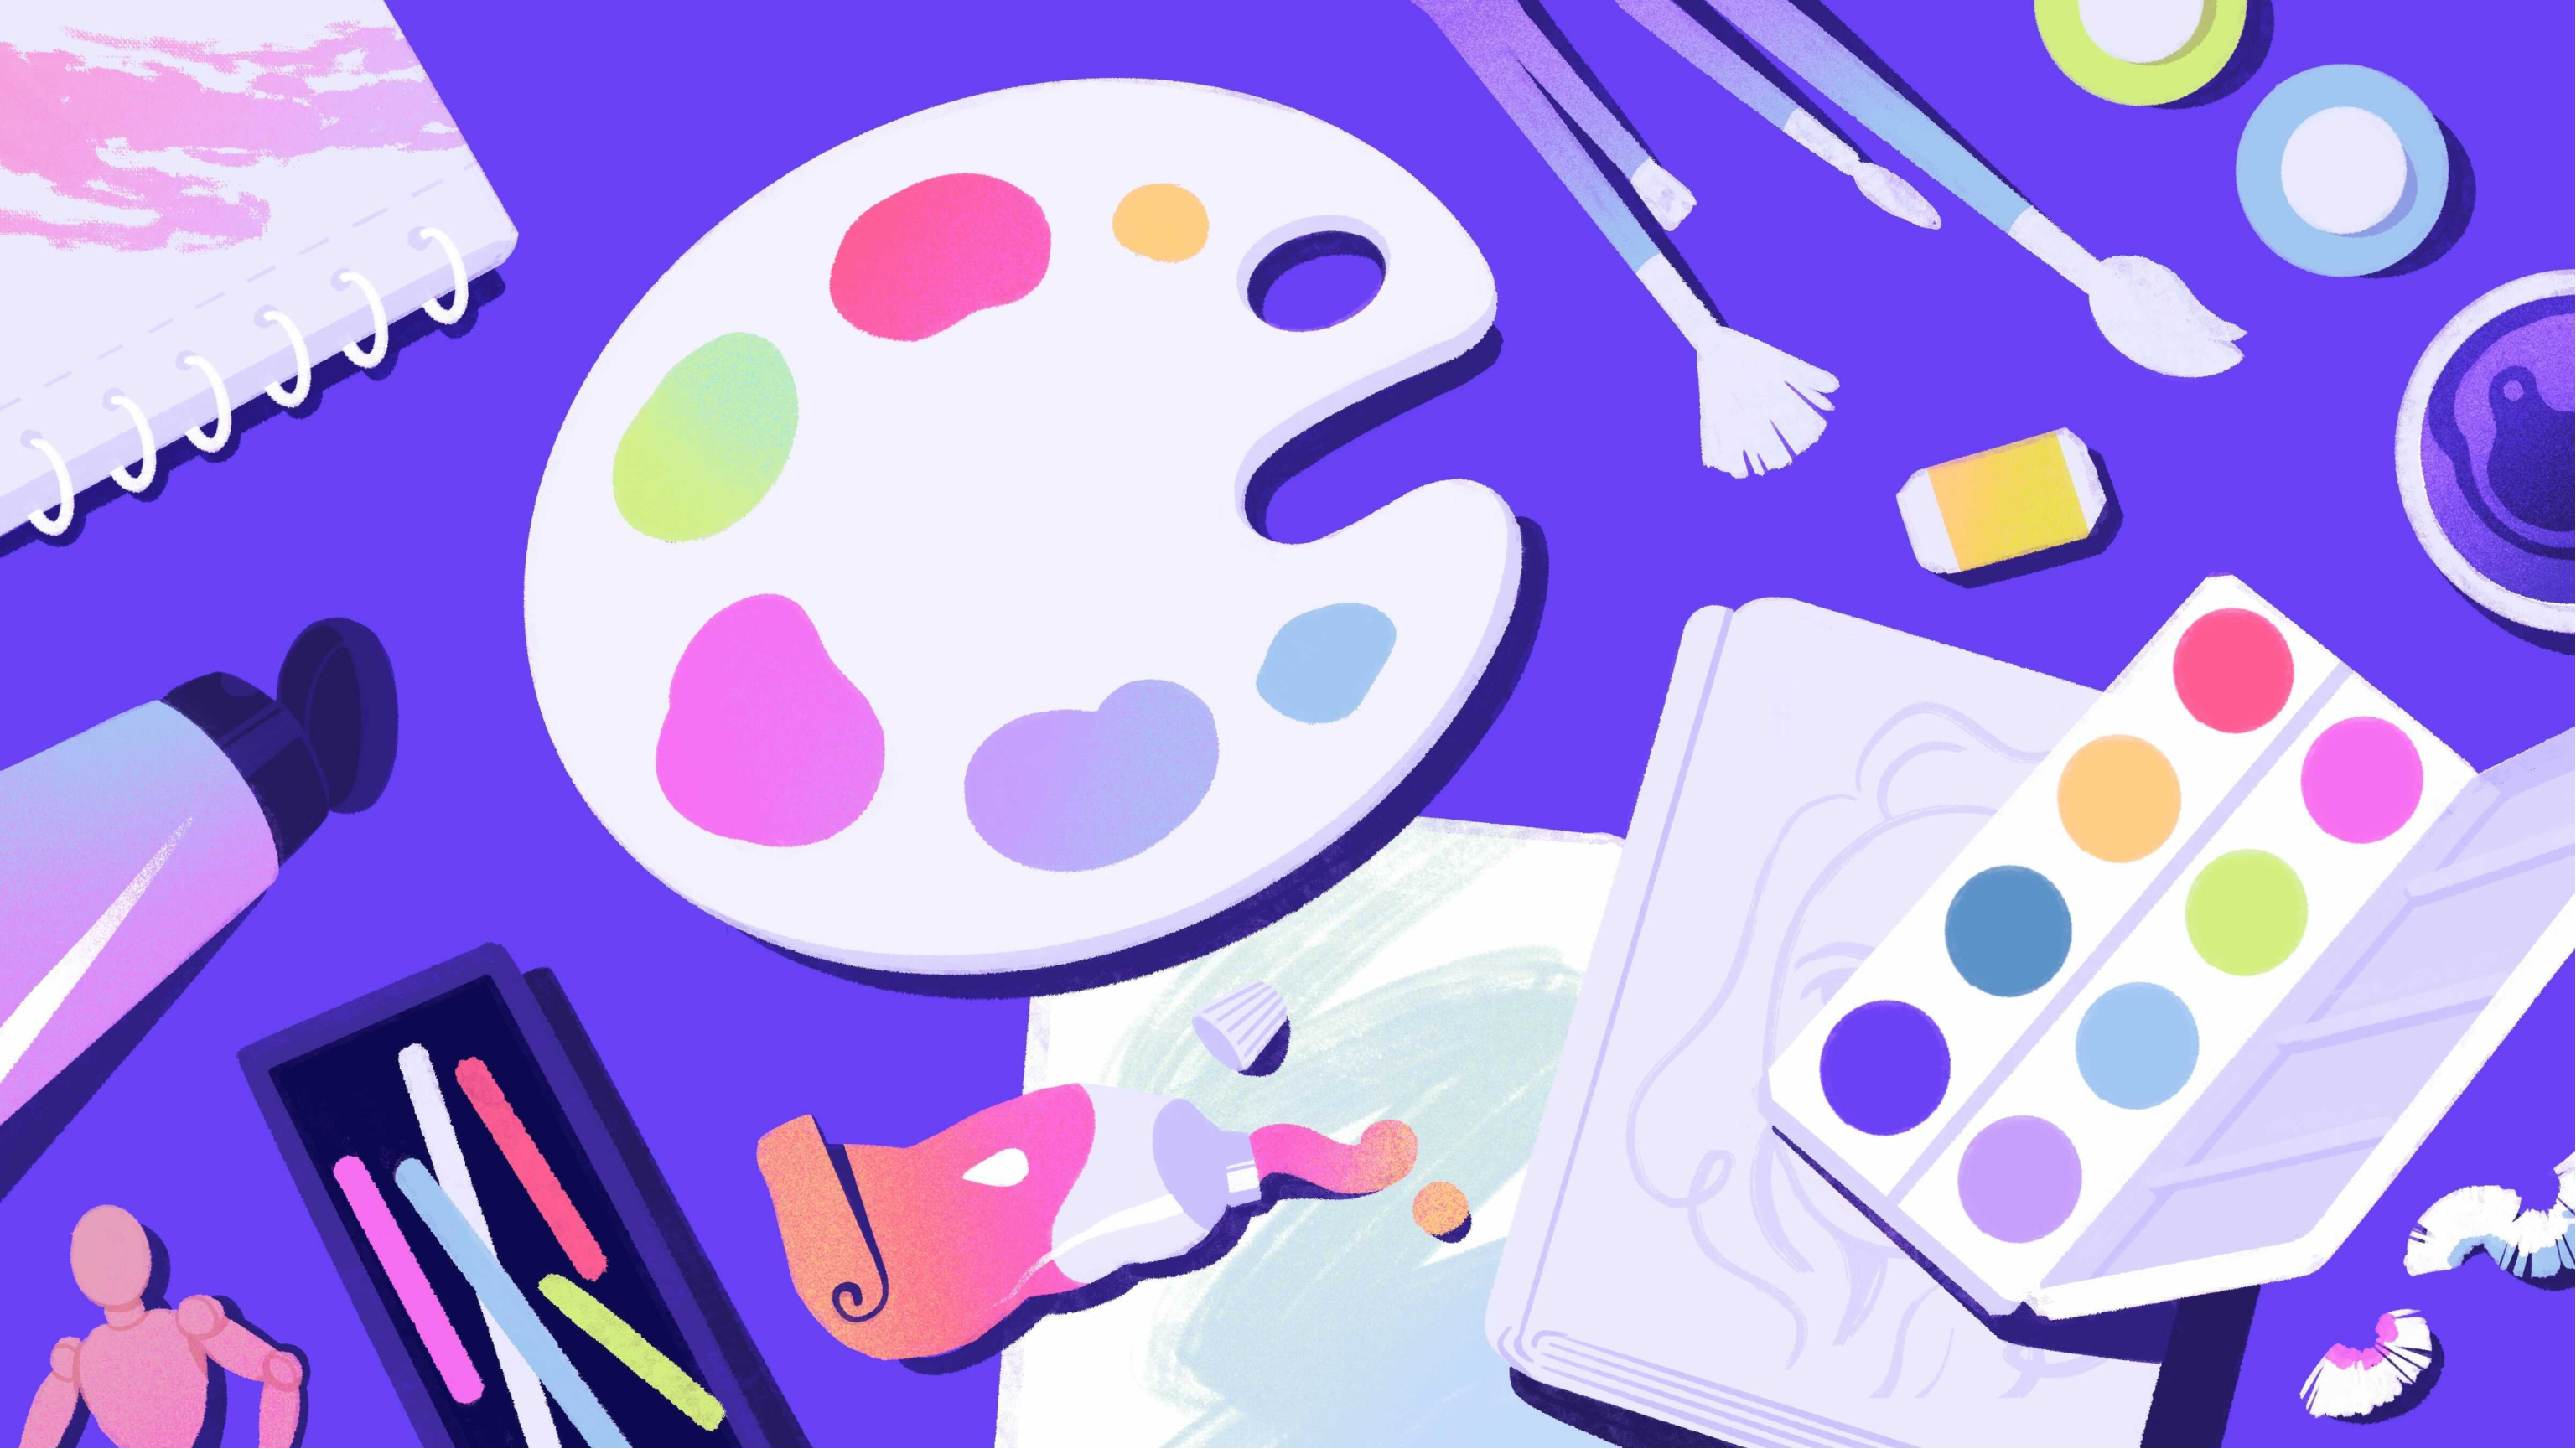 A collection of art supplies